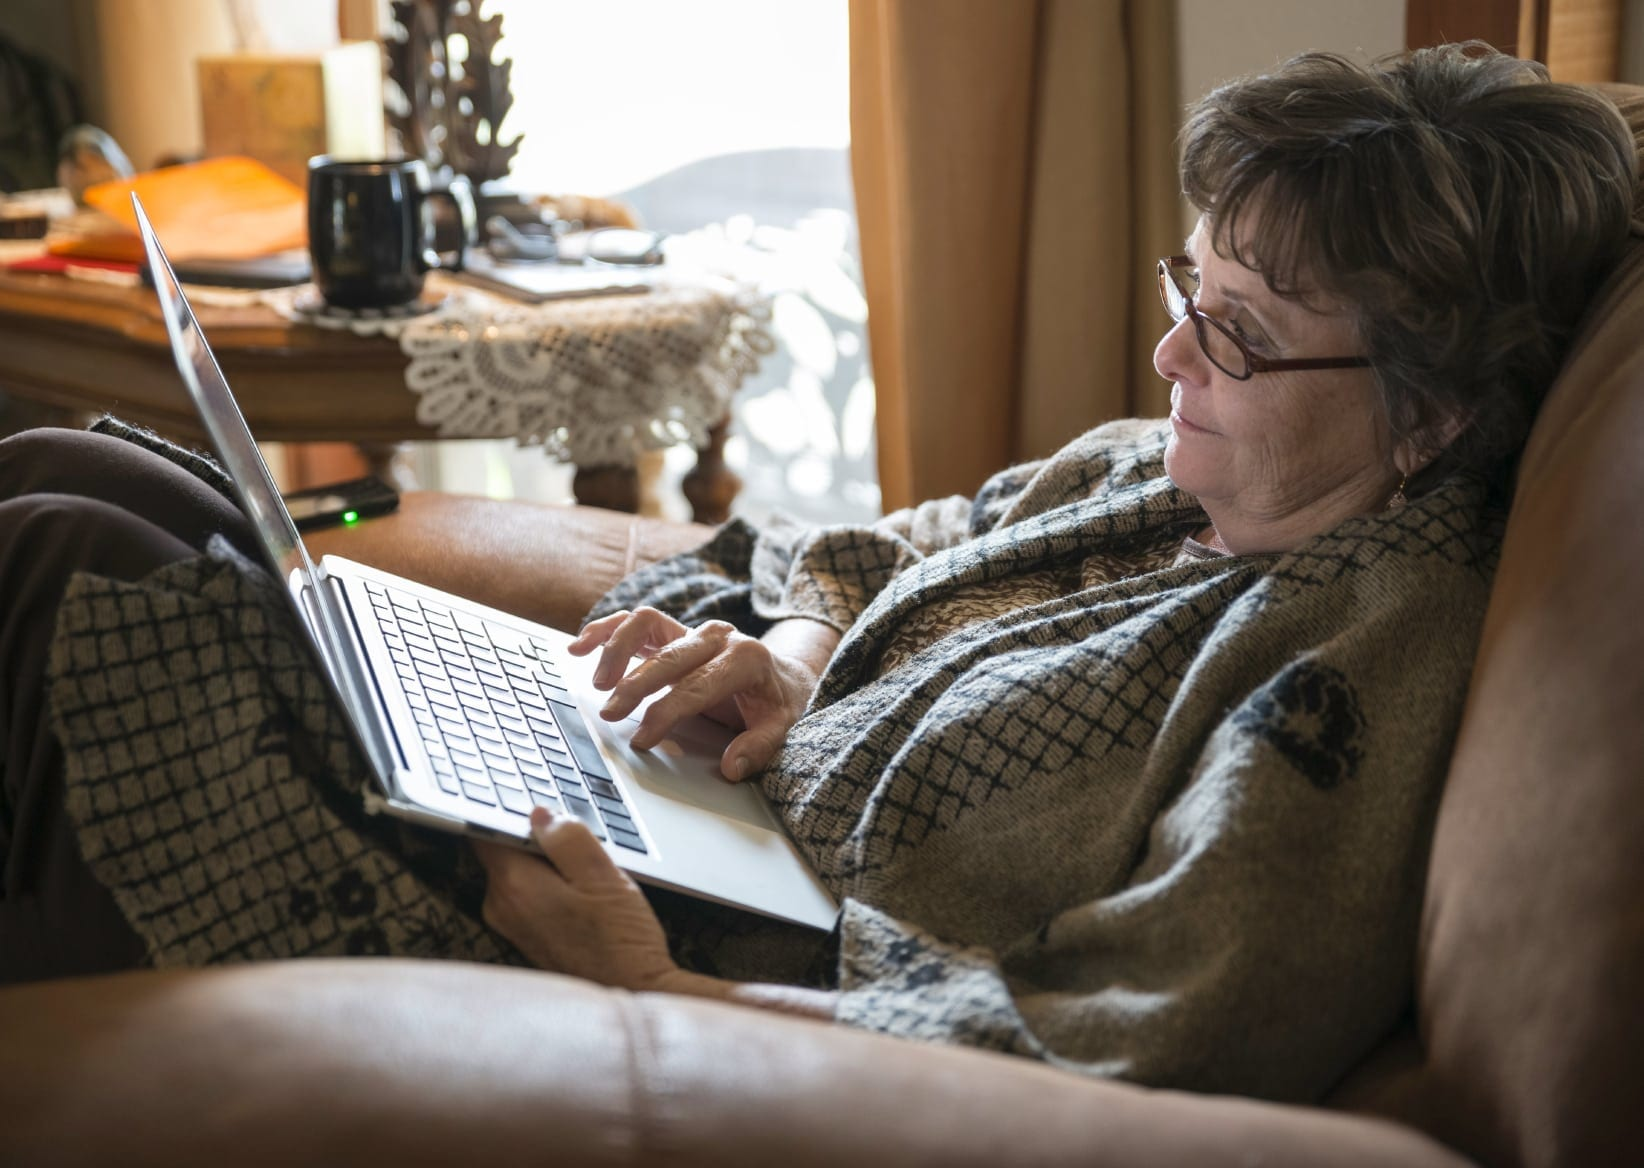 Mature Woman Using A Laptop On The Couch